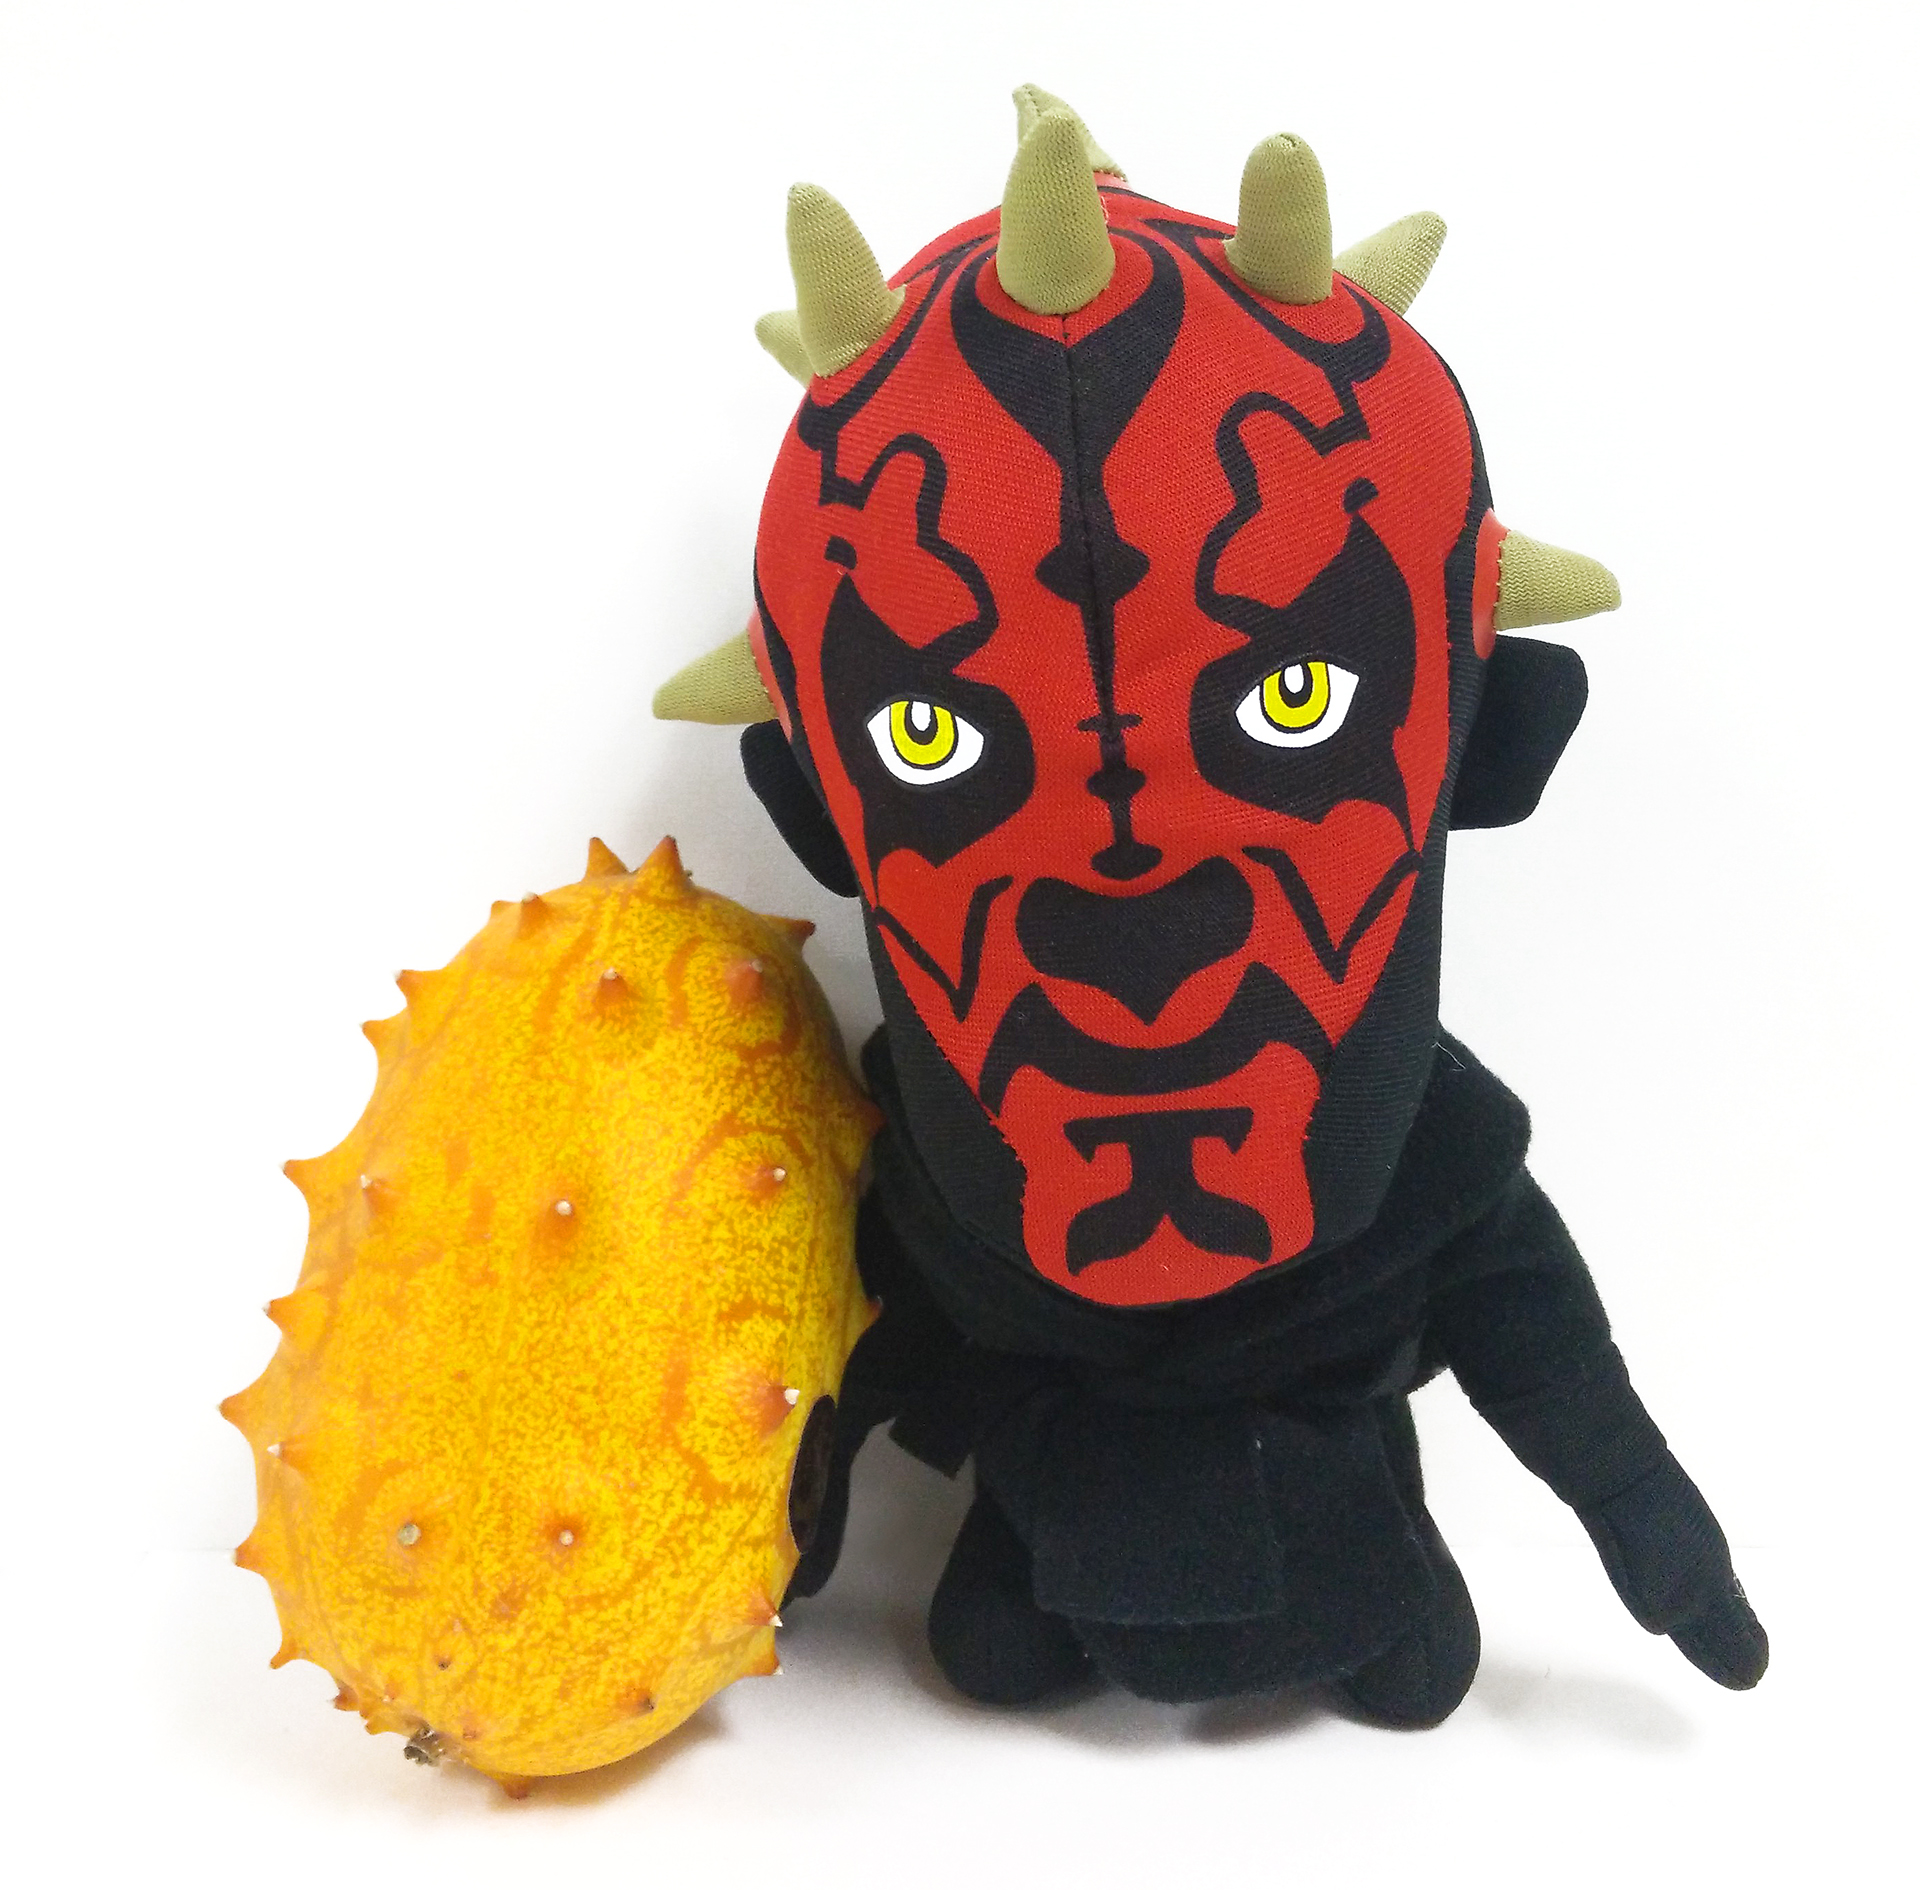 Frieda's Specialty Produce - Darth Maul - Kiwano